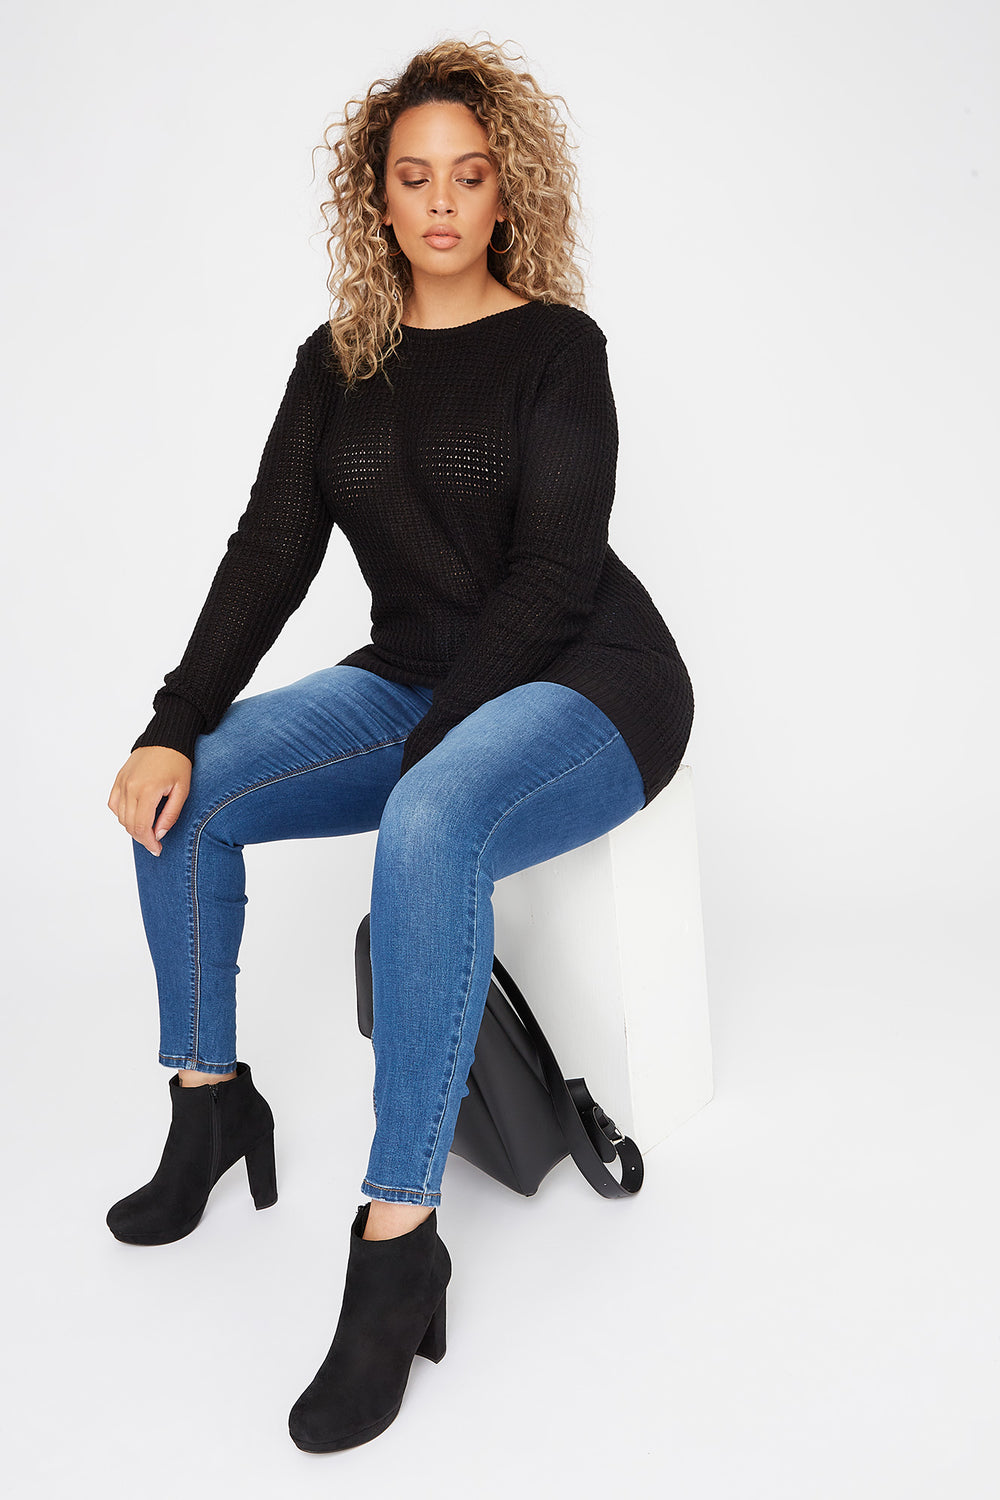 Plus Size Crochet Cross Back Sweater Black